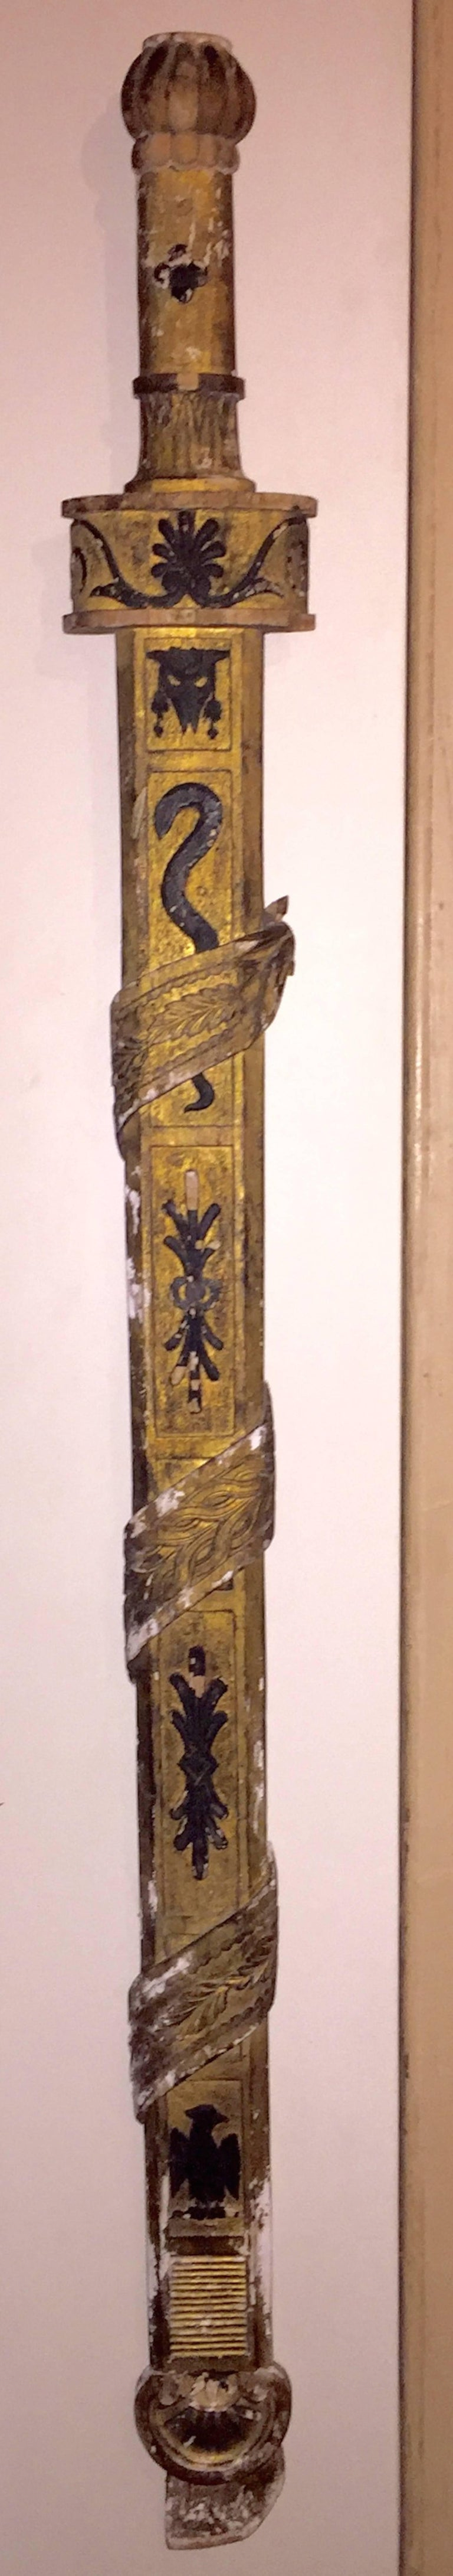 18th Century Italian Neoclassical Gilt and Painted Decorative Wood Sword For Sale 4